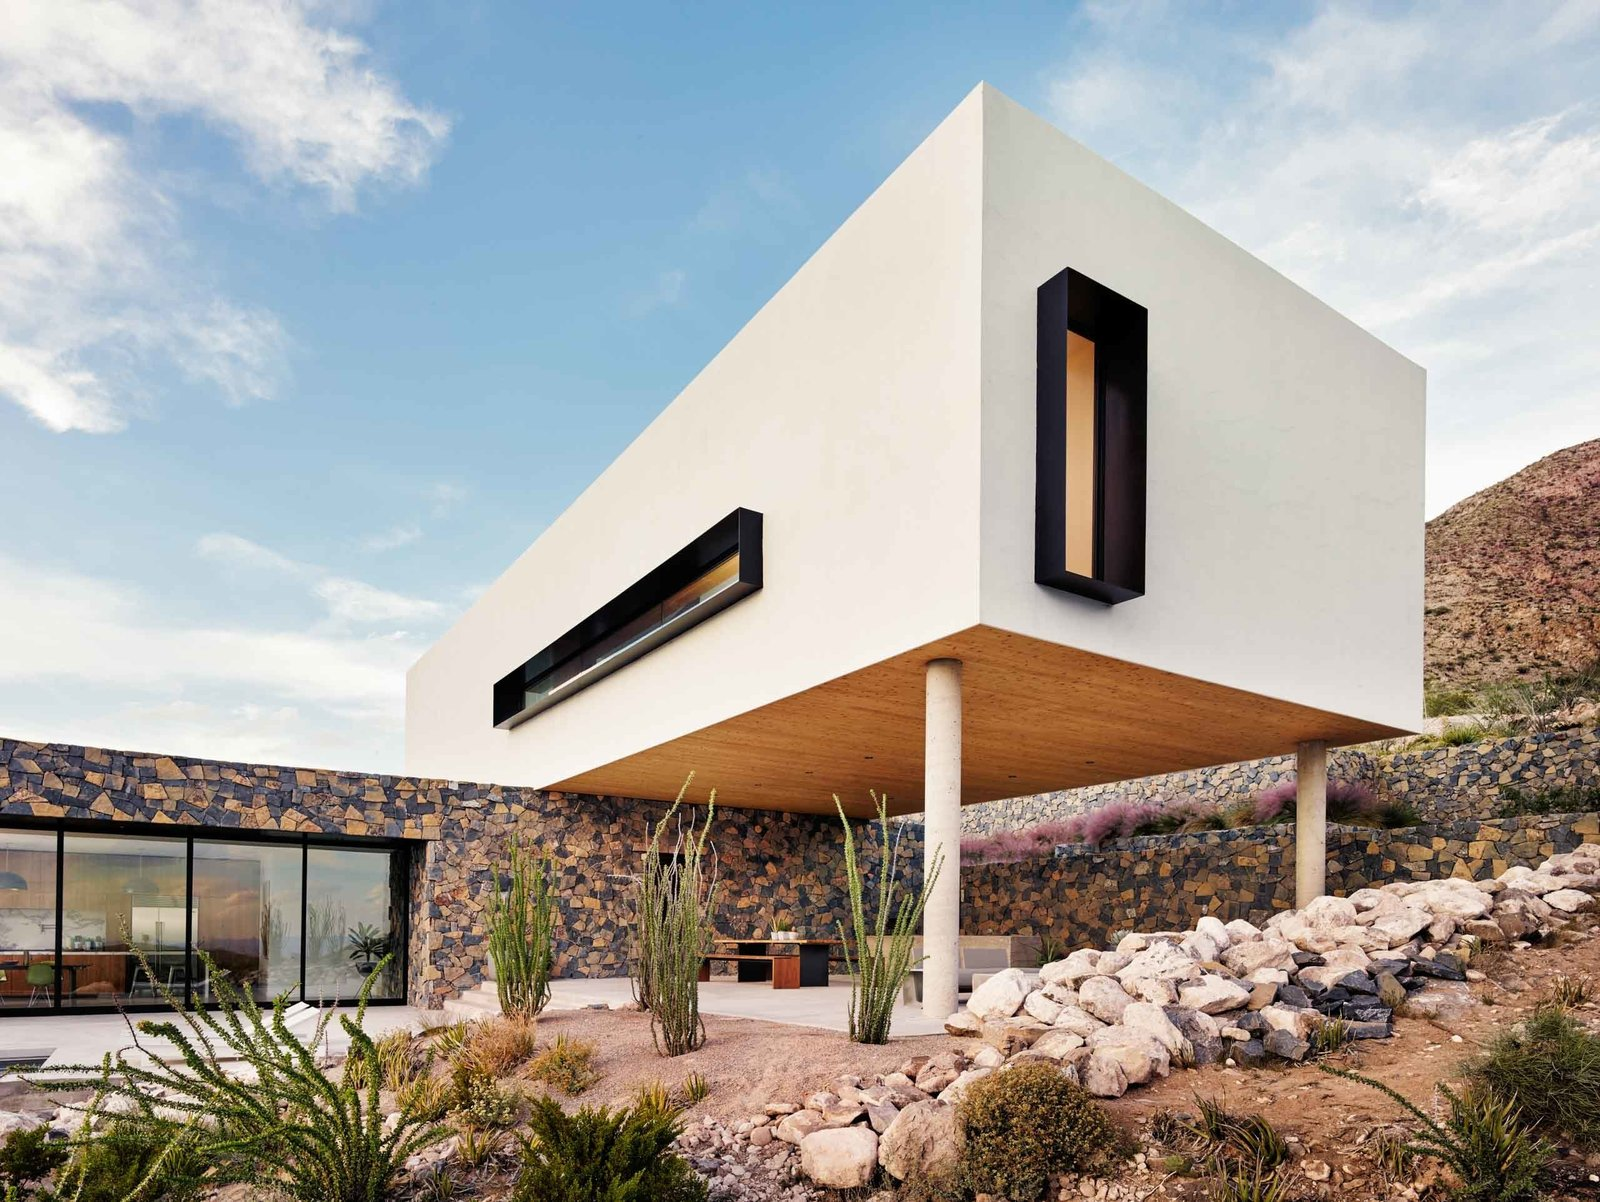 The white stucco volume stands out amid the rocky terrain of the Franklin Mountains near El Paso.  West Texas Vistas